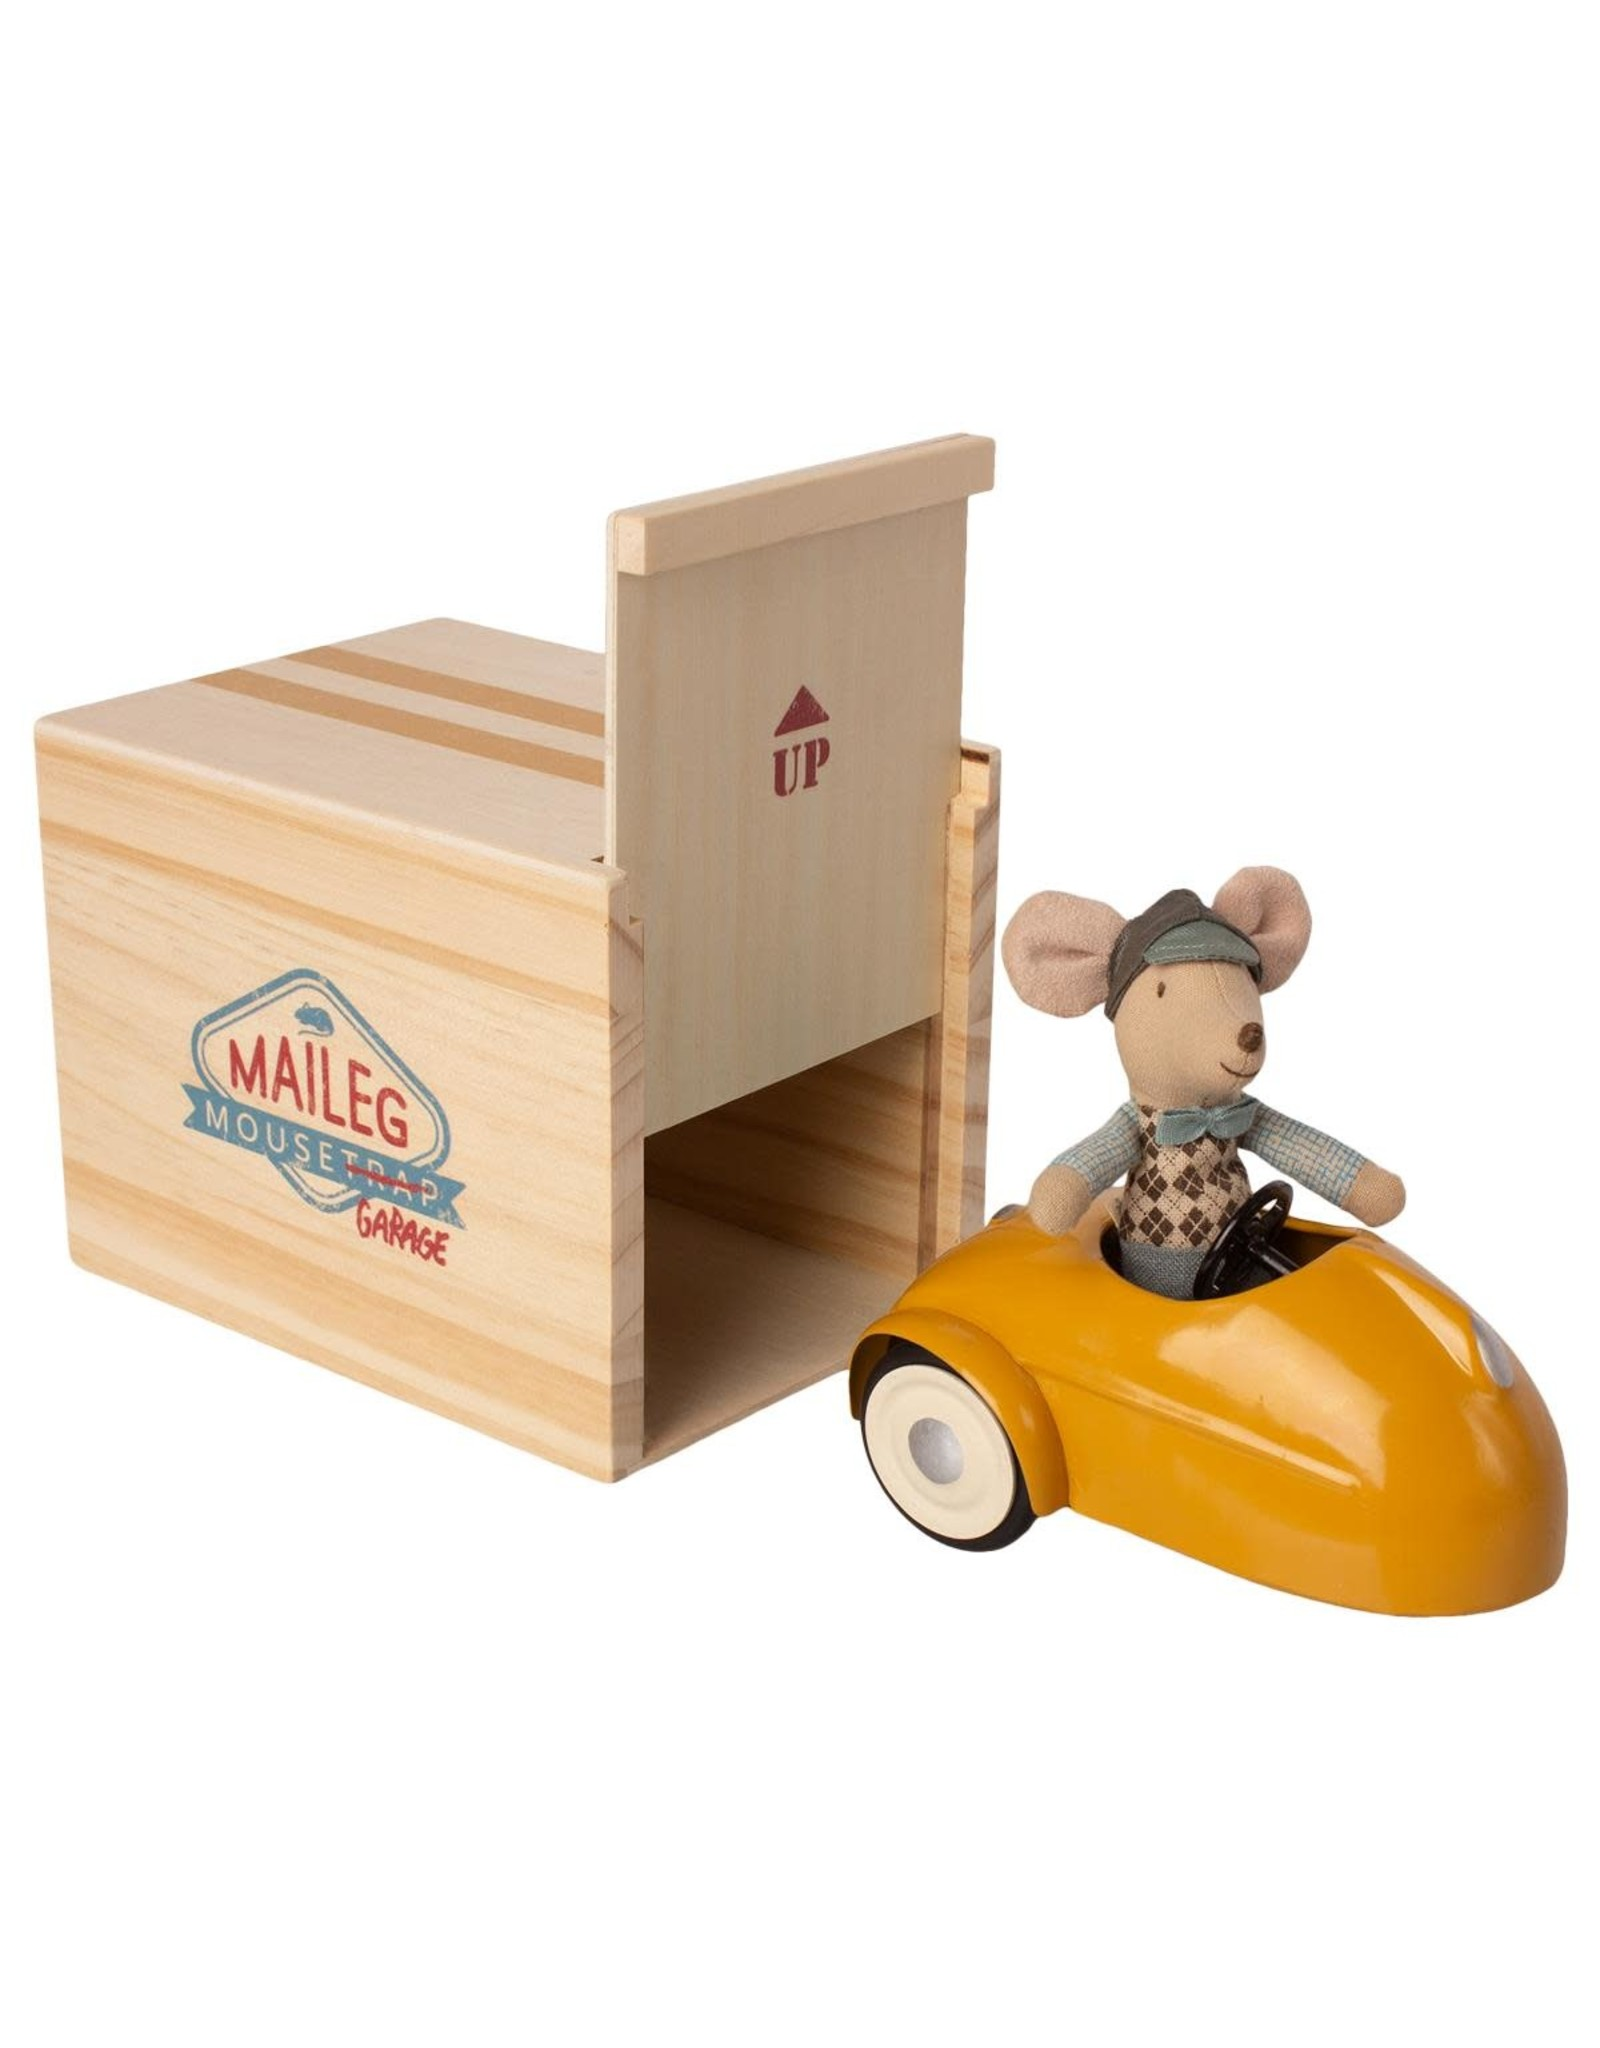 MAILEG Mouse car with garage, Yellow